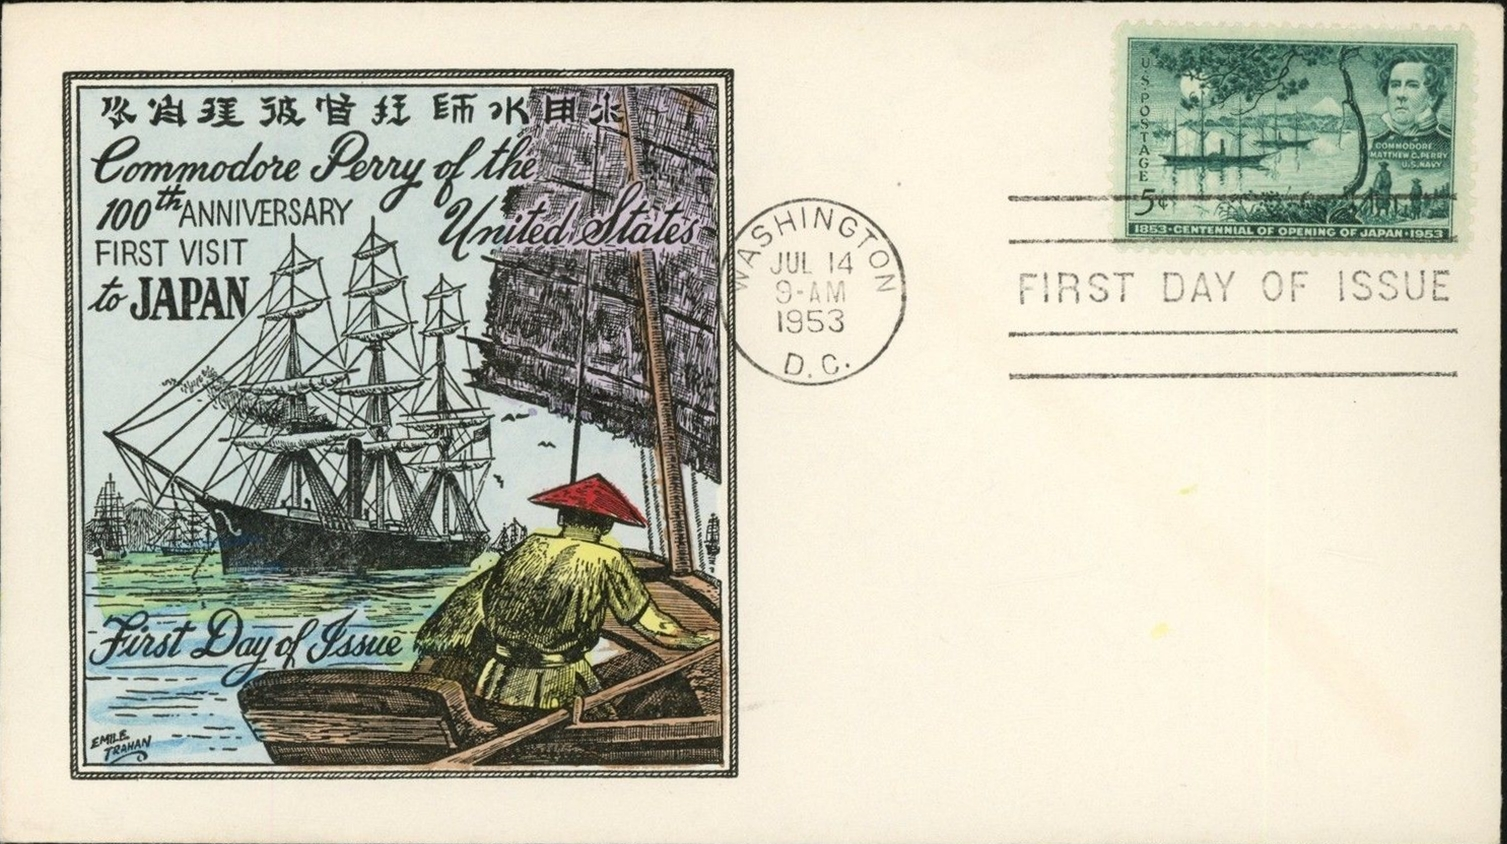 United States - Scott #1021 (1953) first day cover with hand-painted cachet by Trahan.